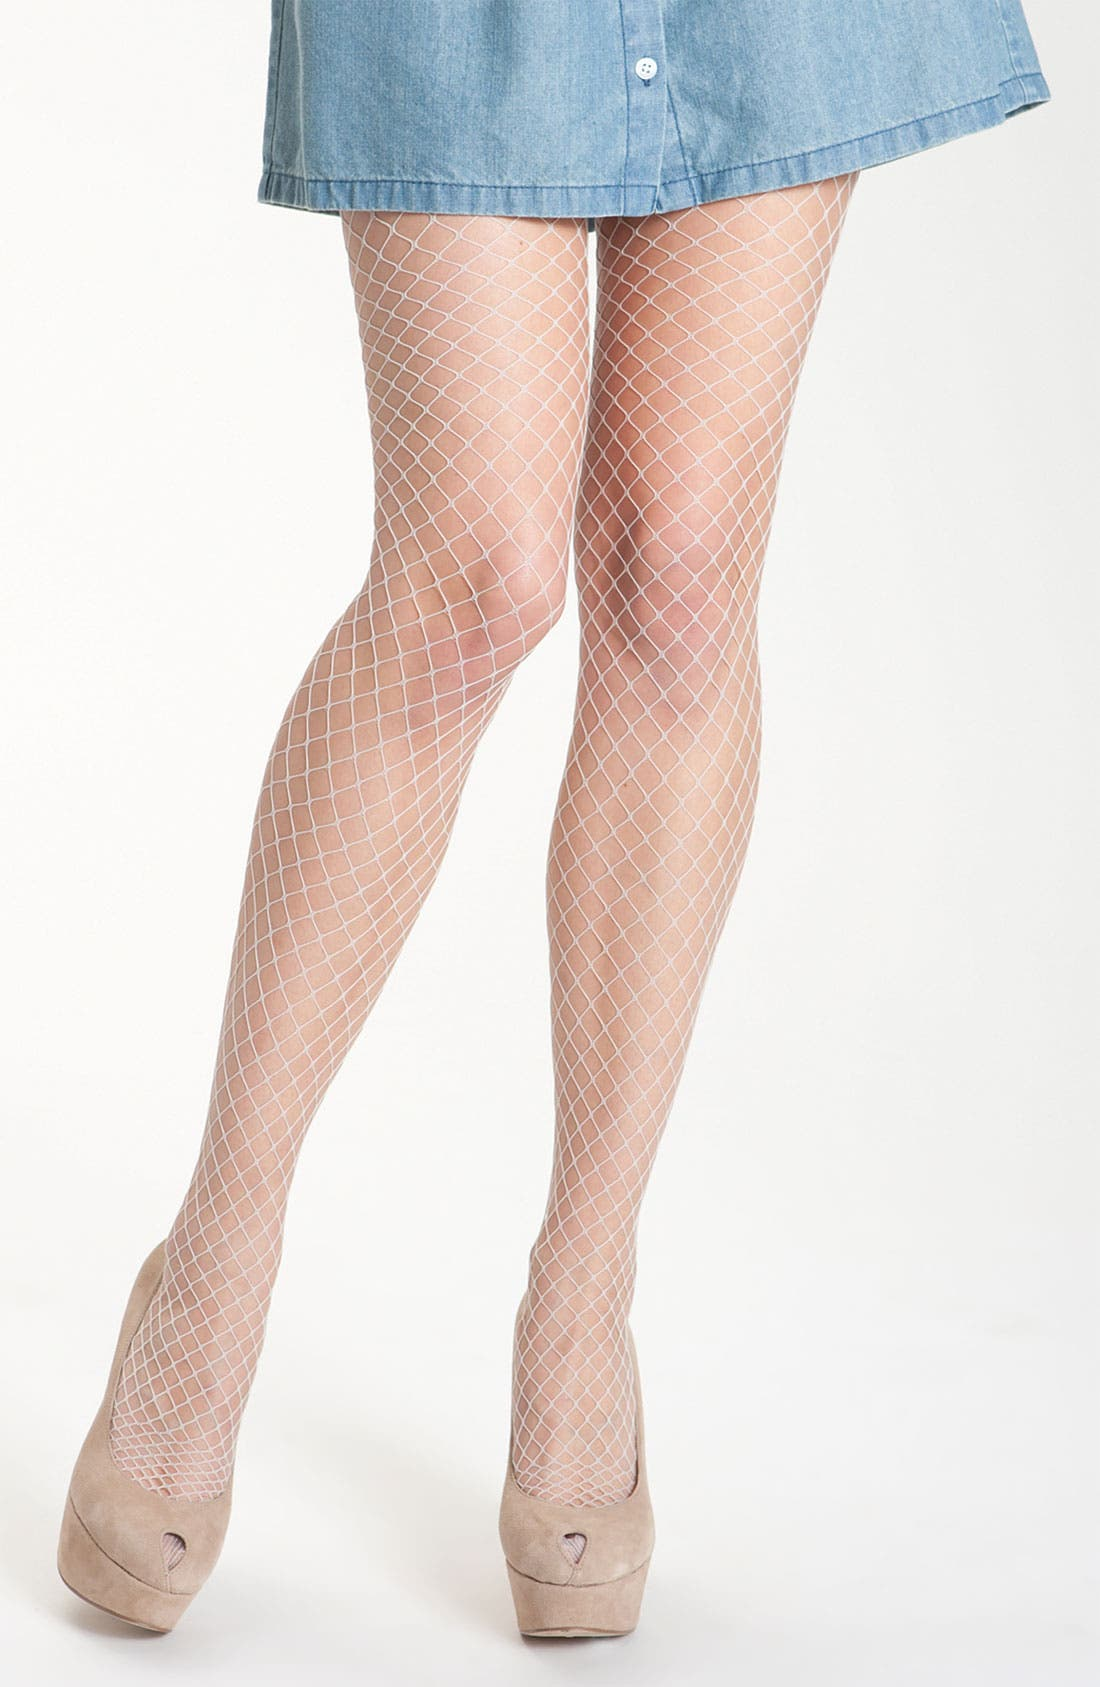 Alternate Image 1 Selected - Pretty Polly Fishnet Stockings (2-Pack)